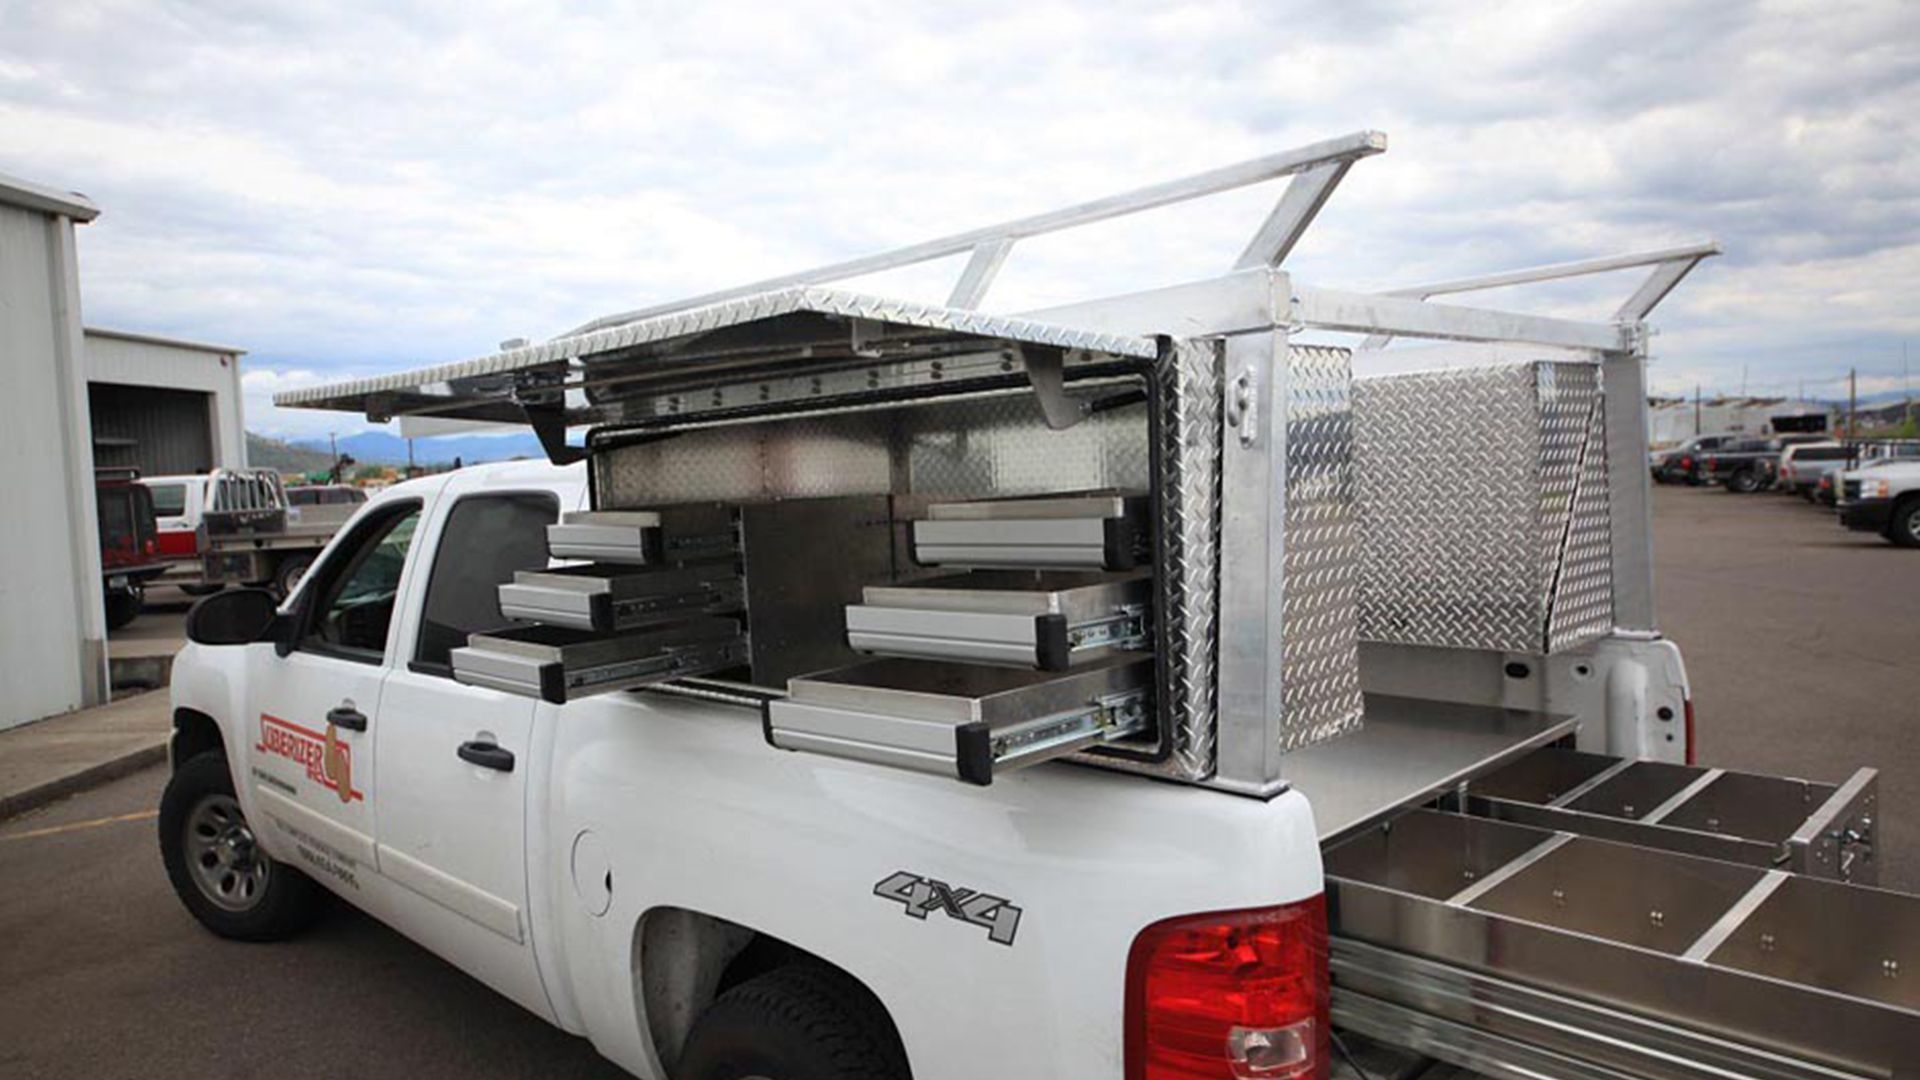 Pin by Cody Boswell on Truck beds Truck tools, Truck